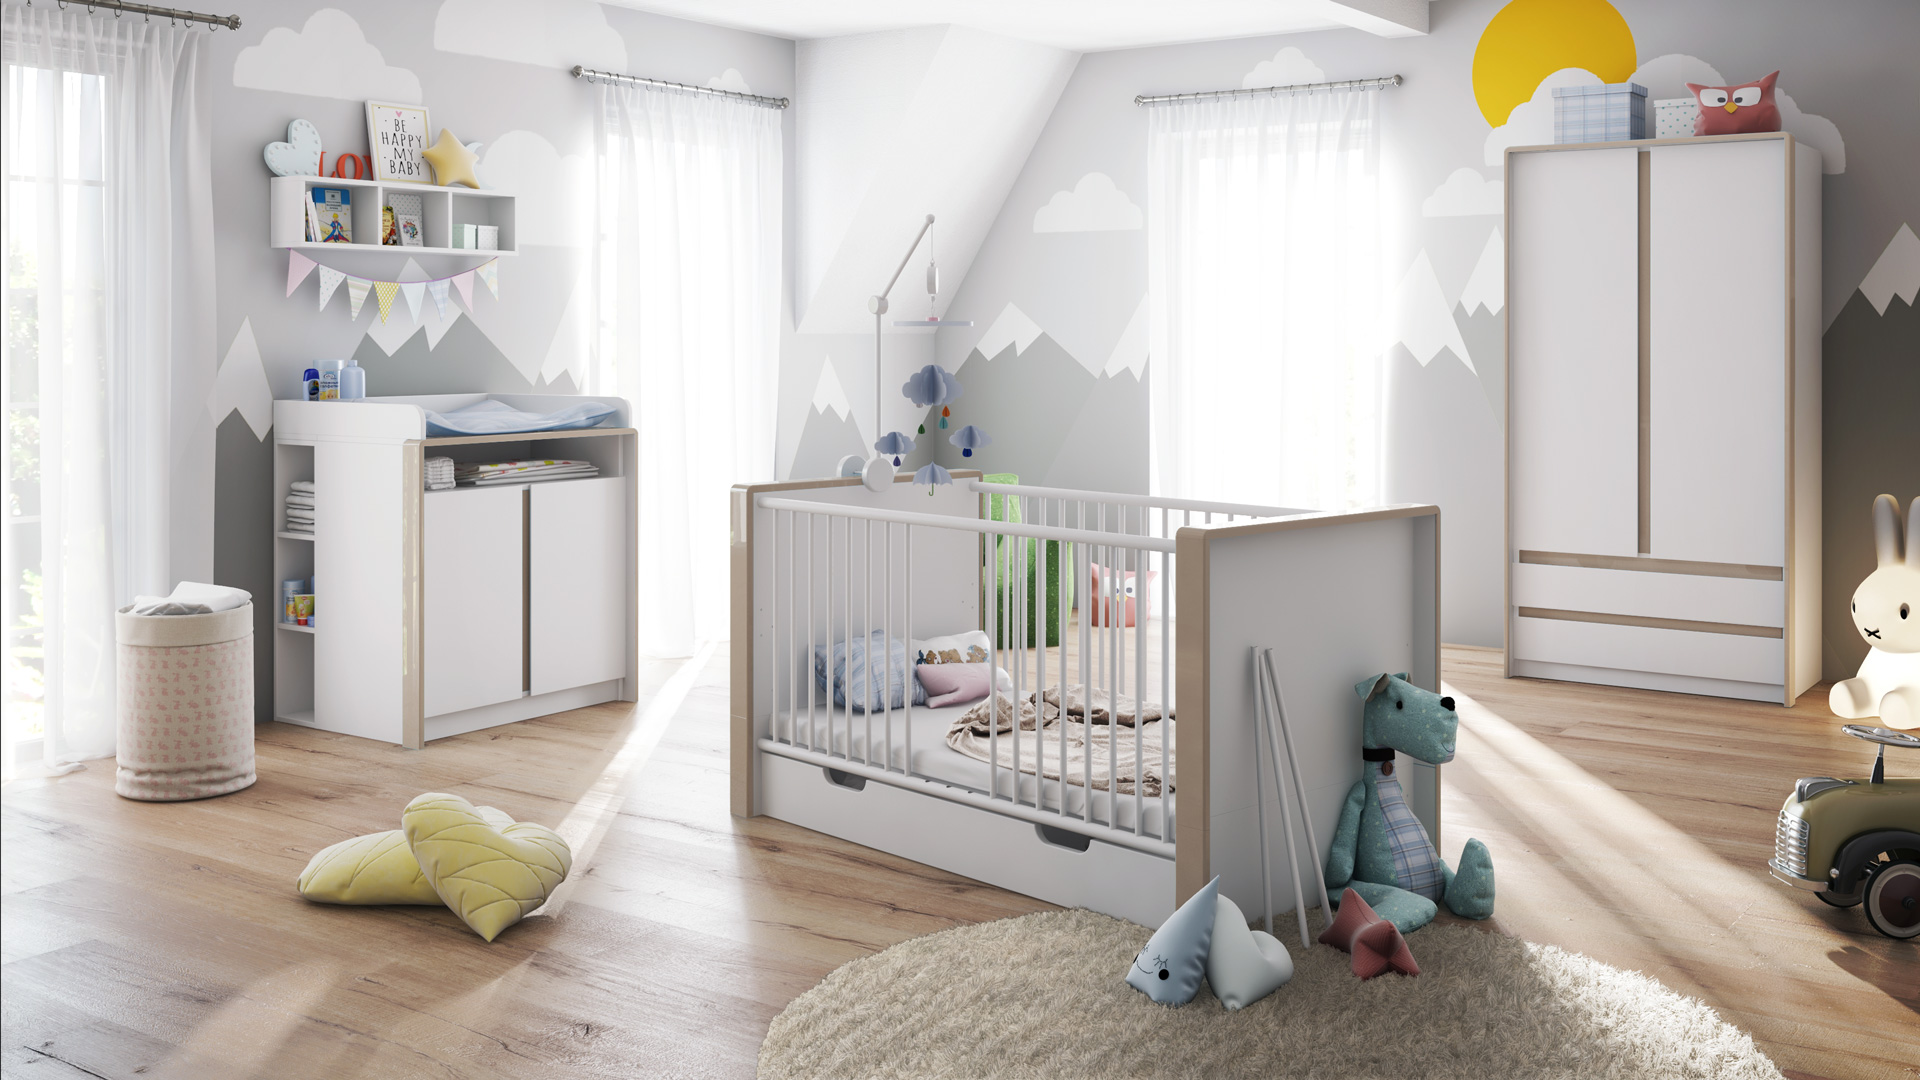 babyzimmer kinderzimmer schrank bett wickelkommode umbaubar nandini set 1 wei ebay. Black Bedroom Furniture Sets. Home Design Ideas